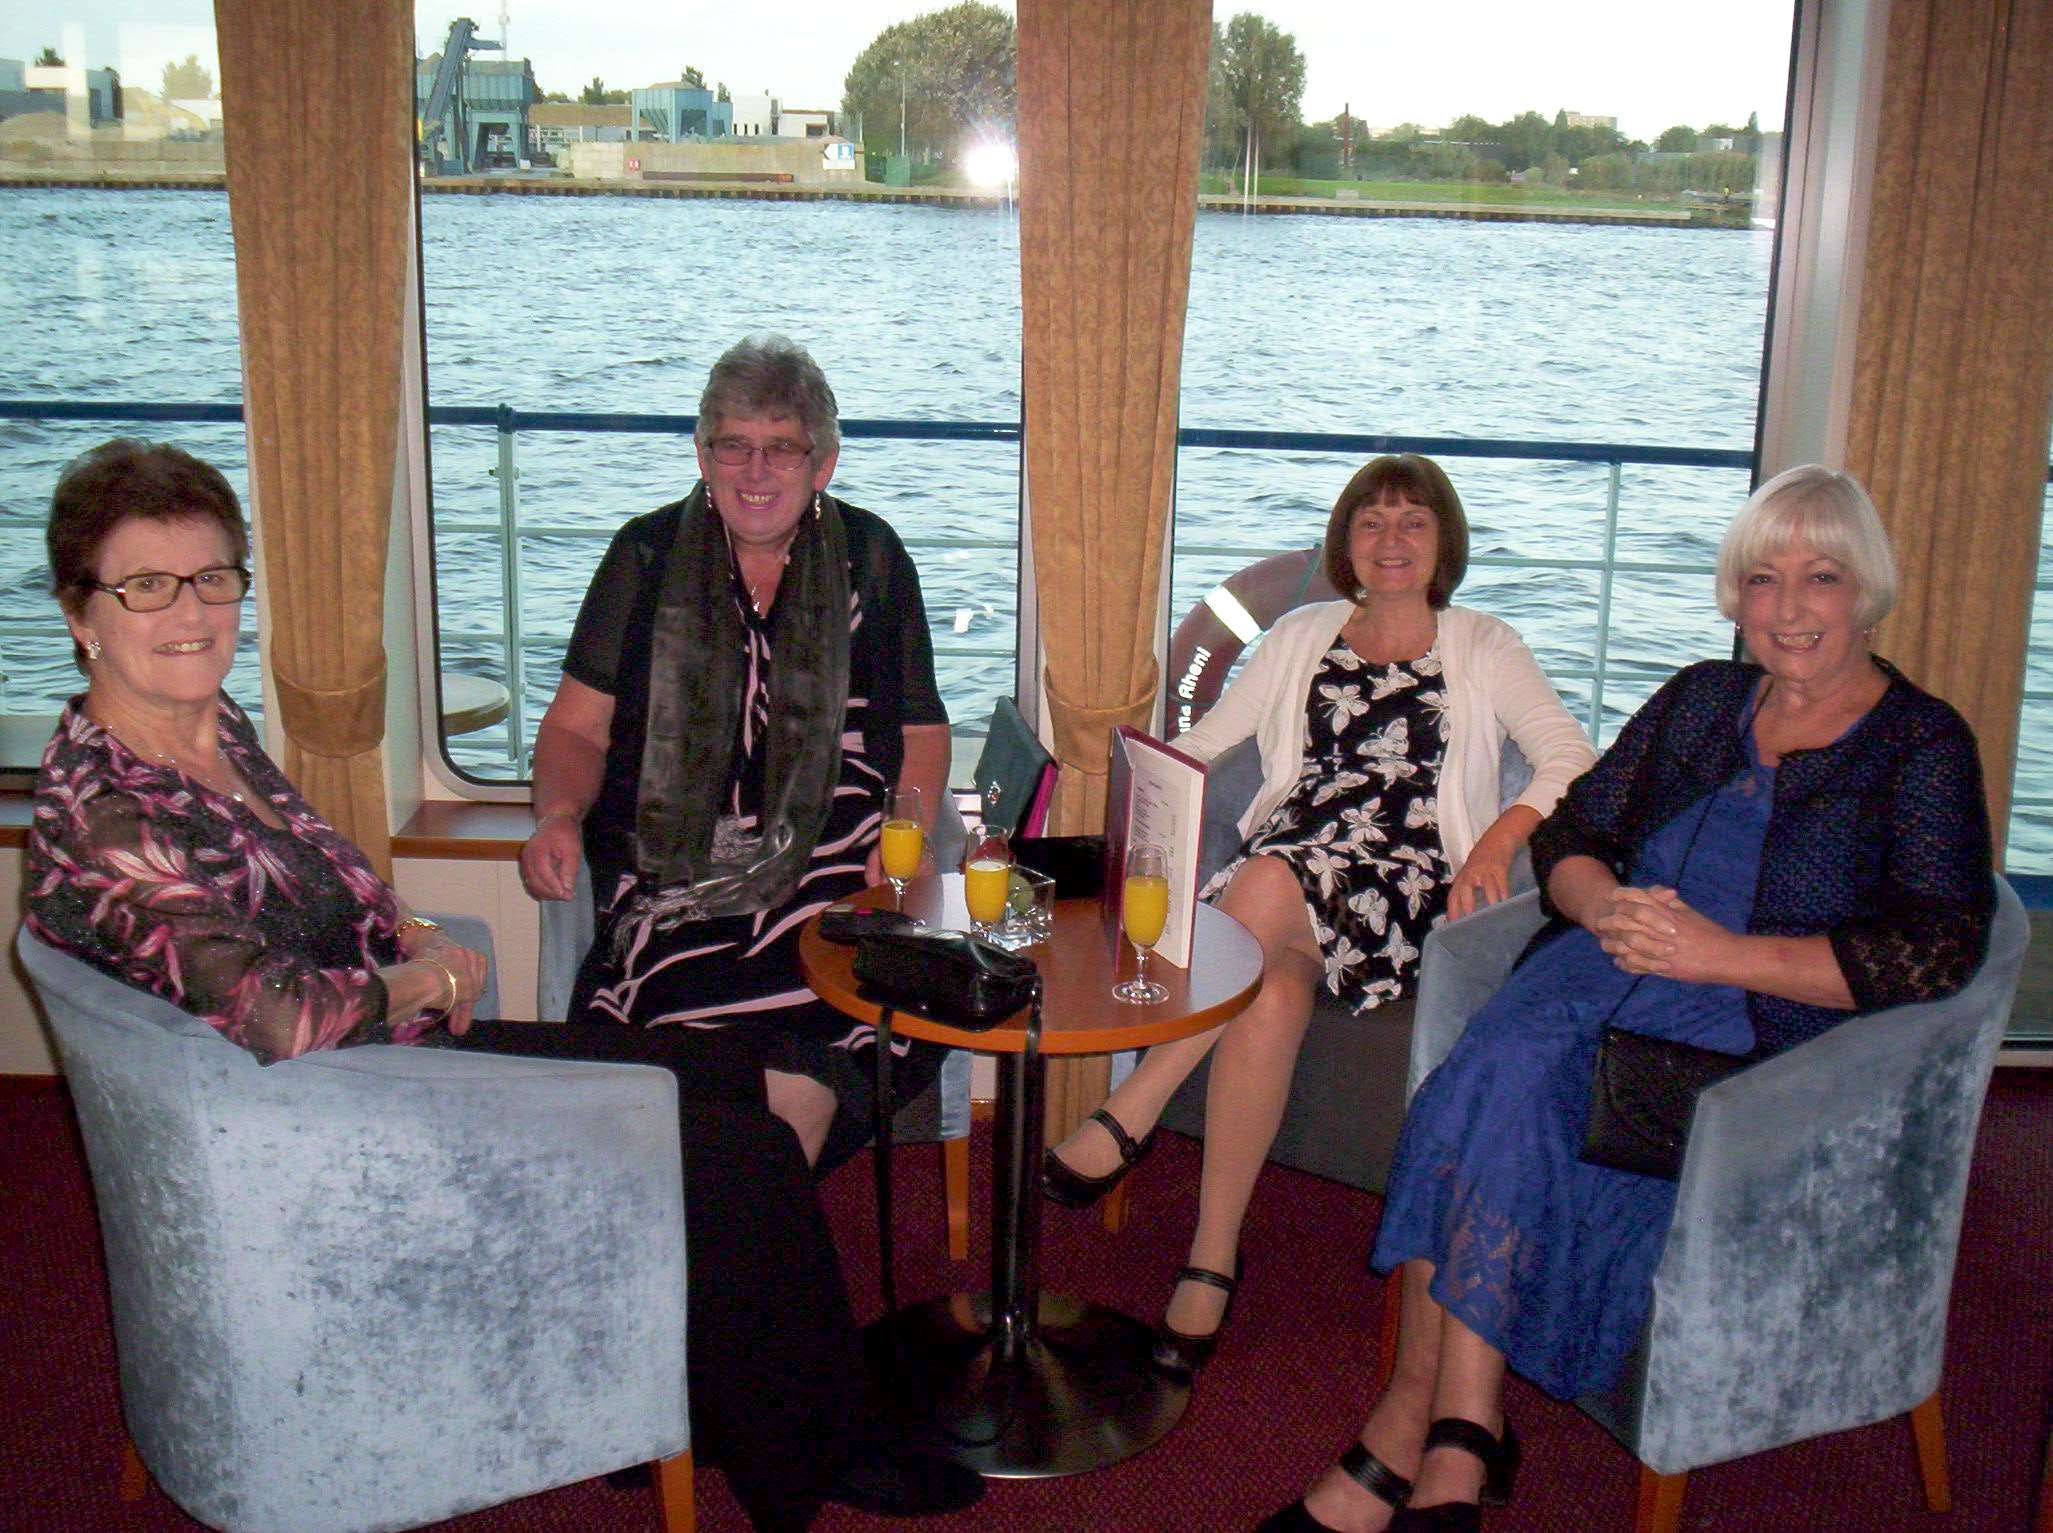 181009 AQ Dutch River Cruise Oct 2018 009a1jpg